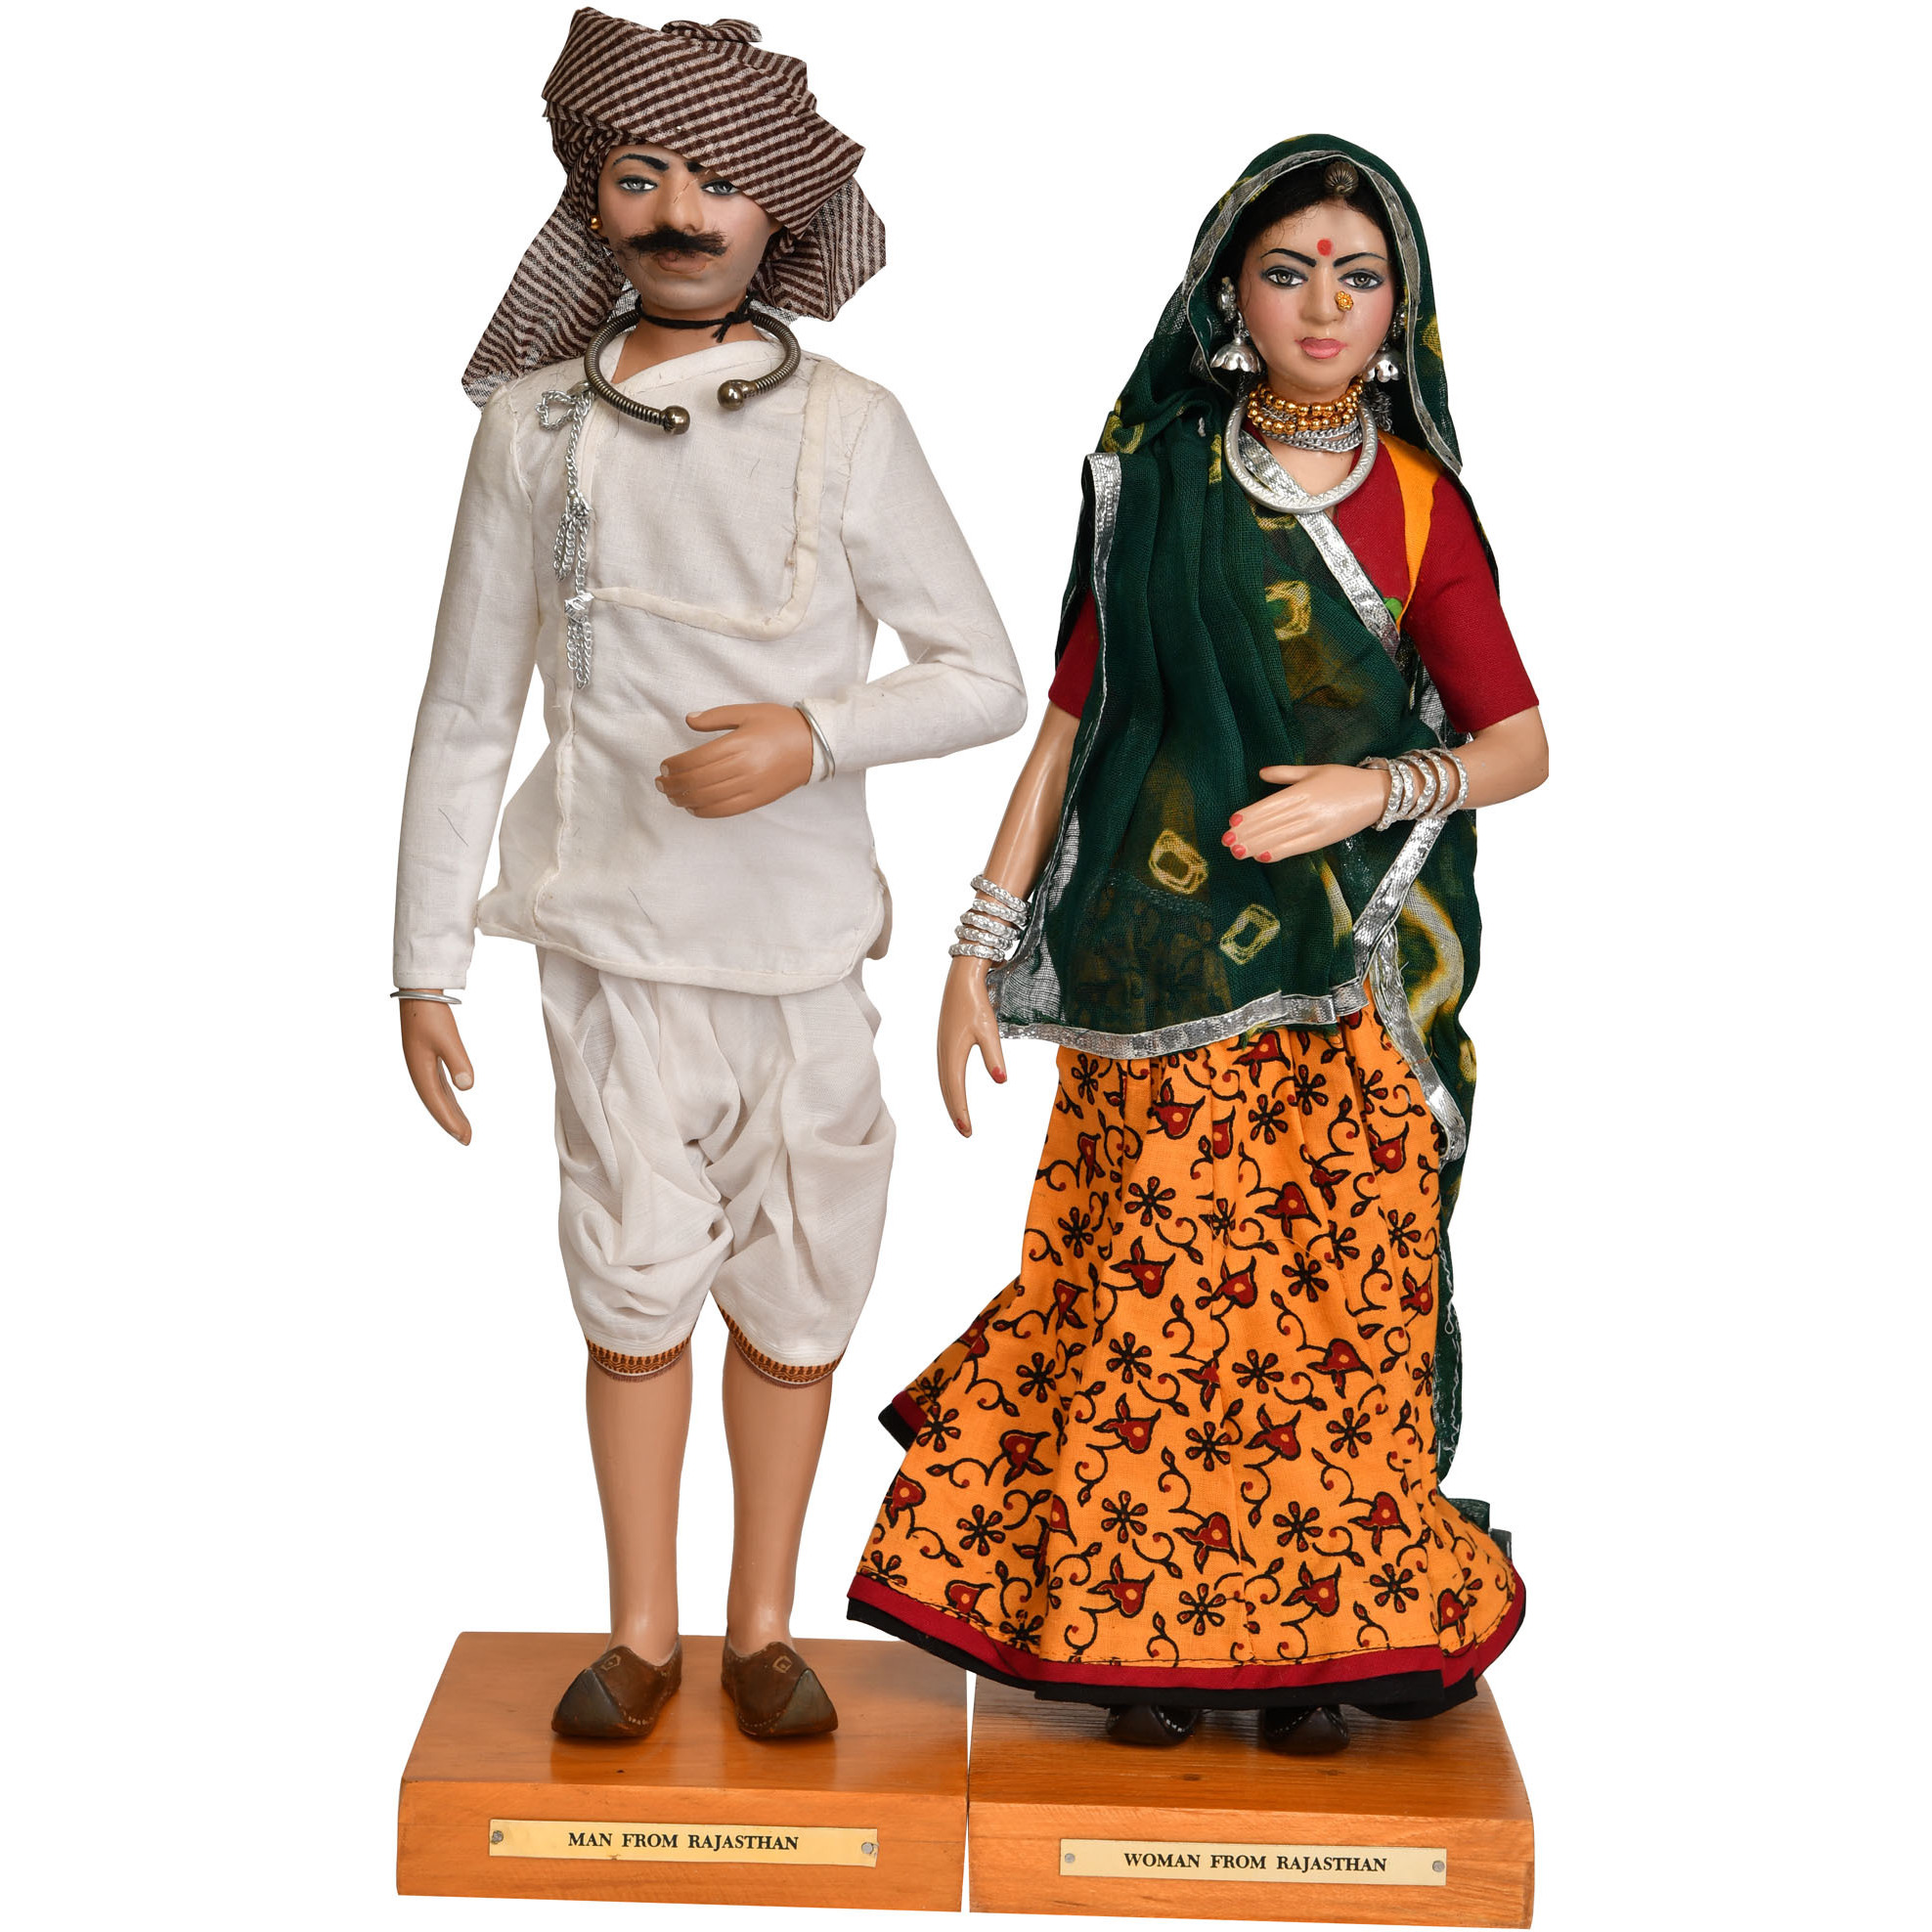 Man and Woman from Rajasthan